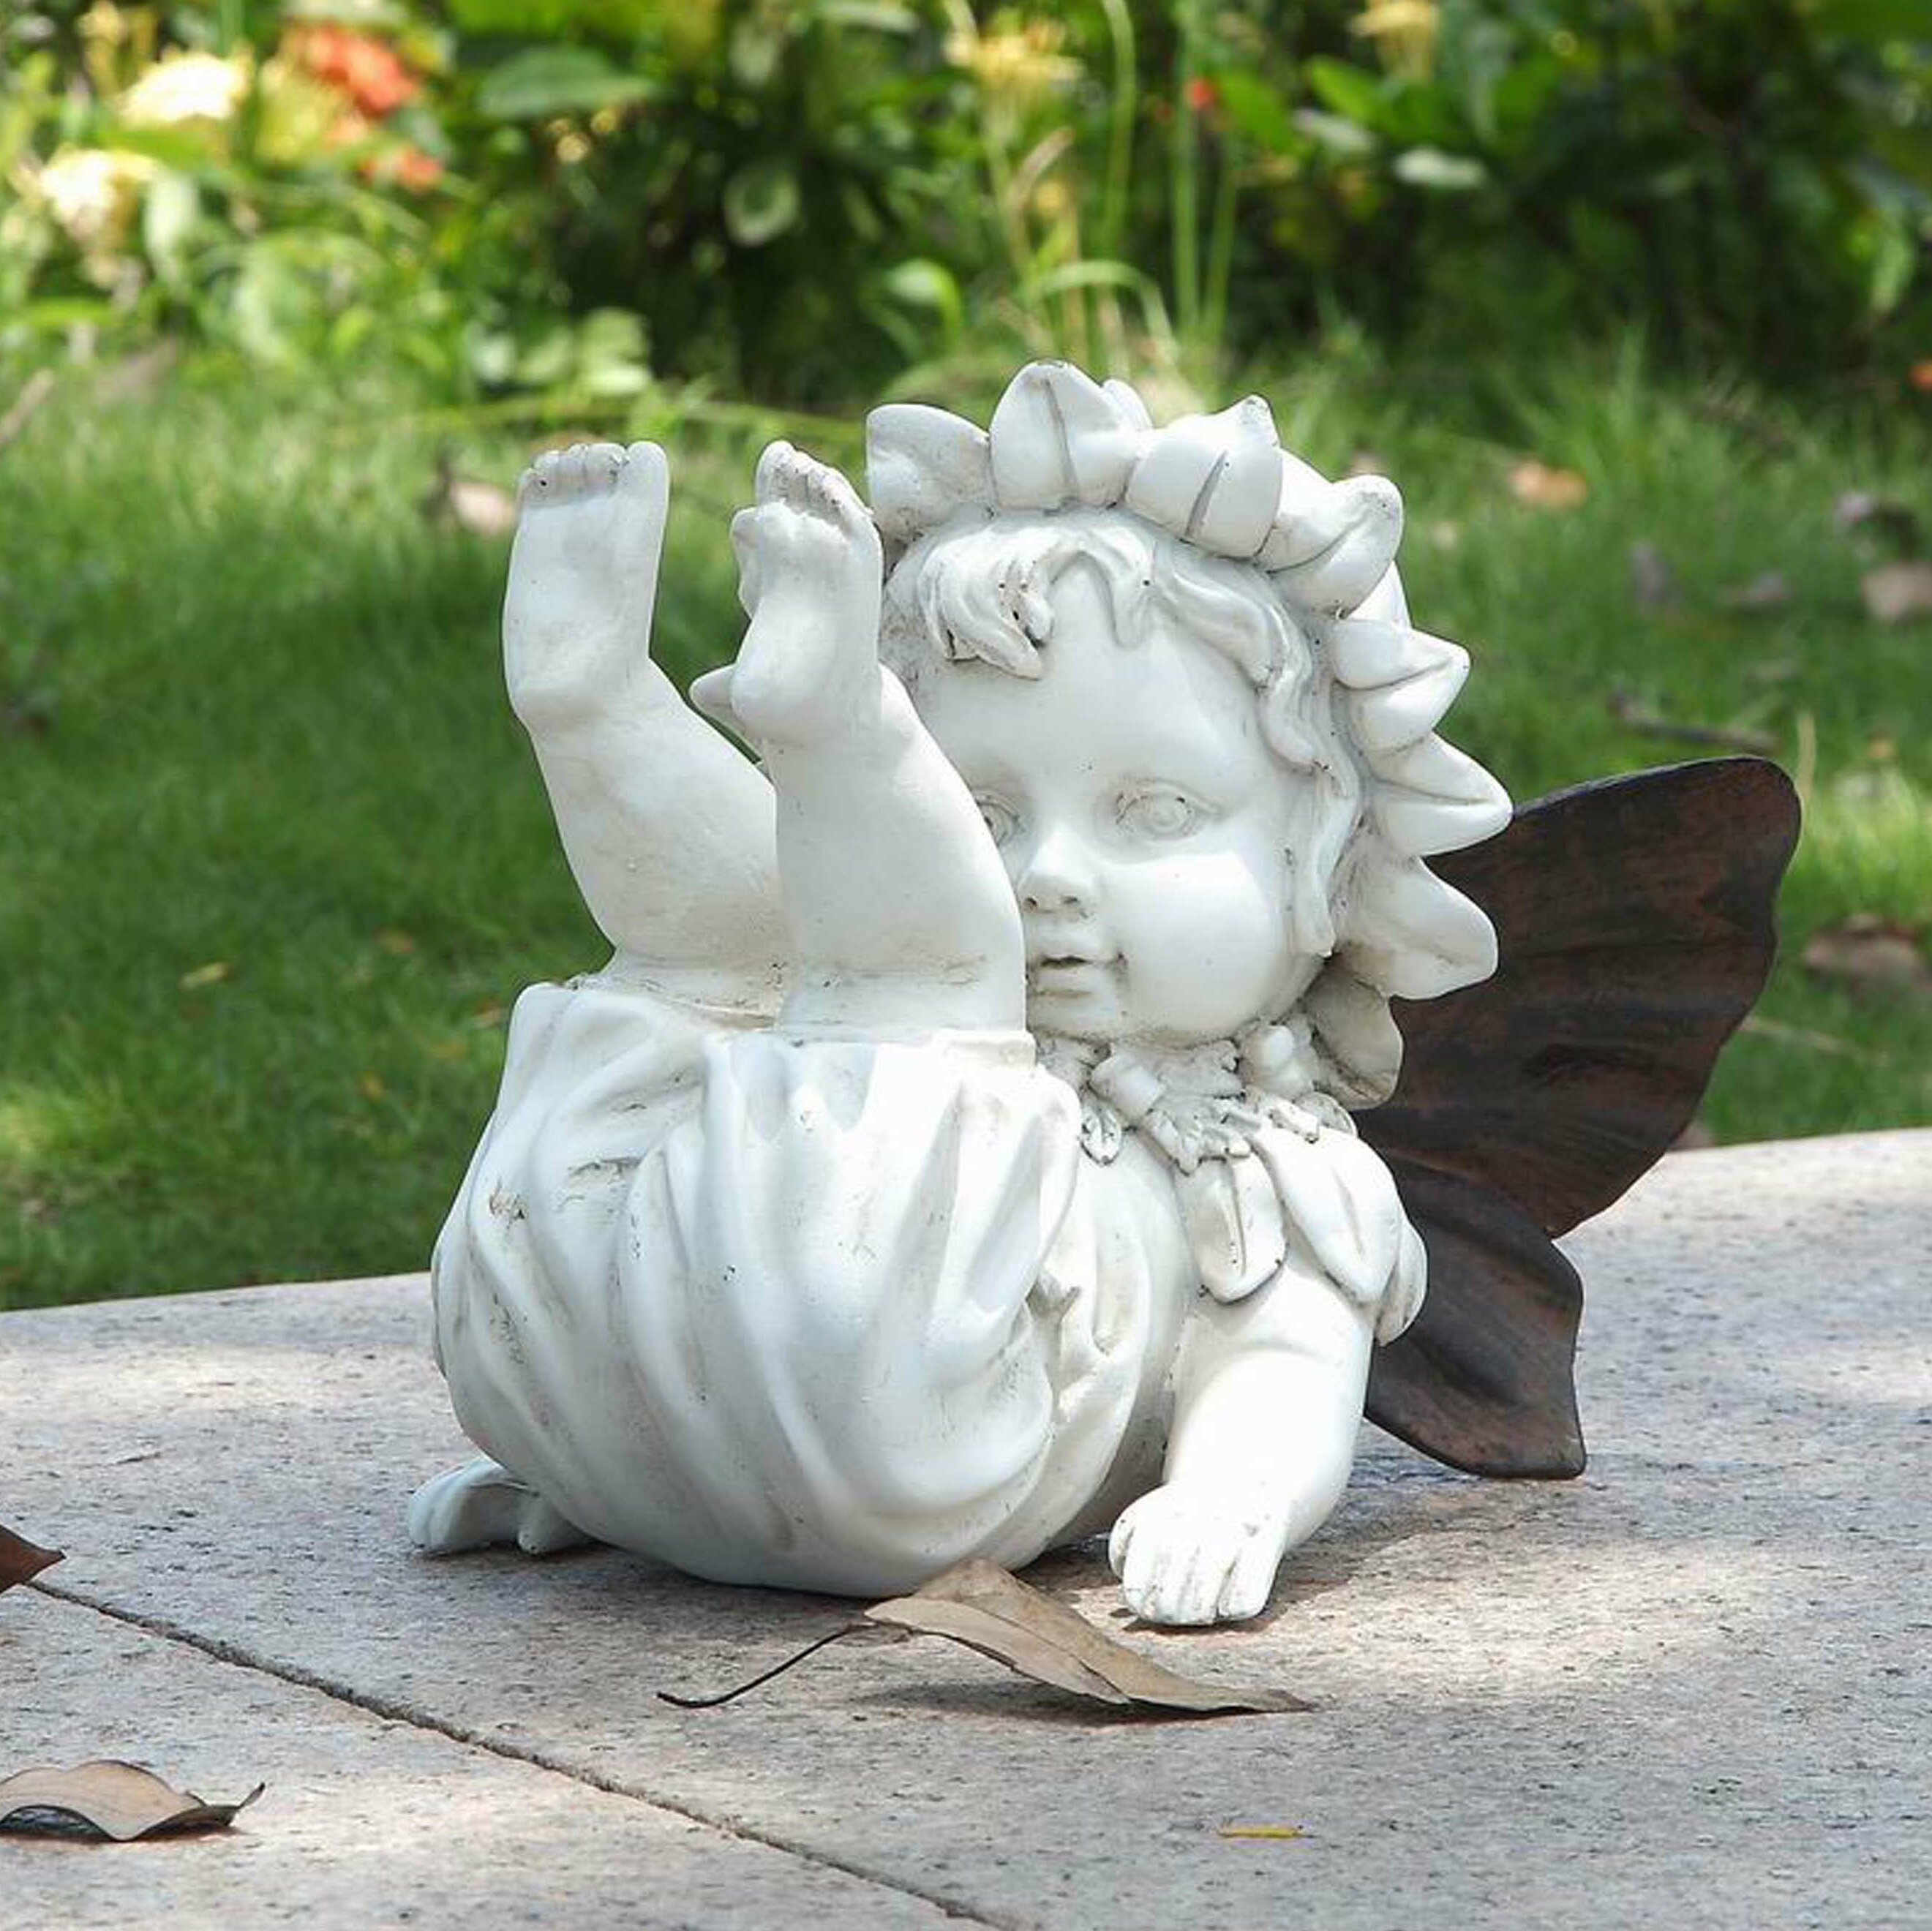 Collectibles Fantasy Mythical Magic Collectibles Baby Fairy Crawling Statue Home Yard Or Garden Decor Free Shipping Fairy Whitelabel Group